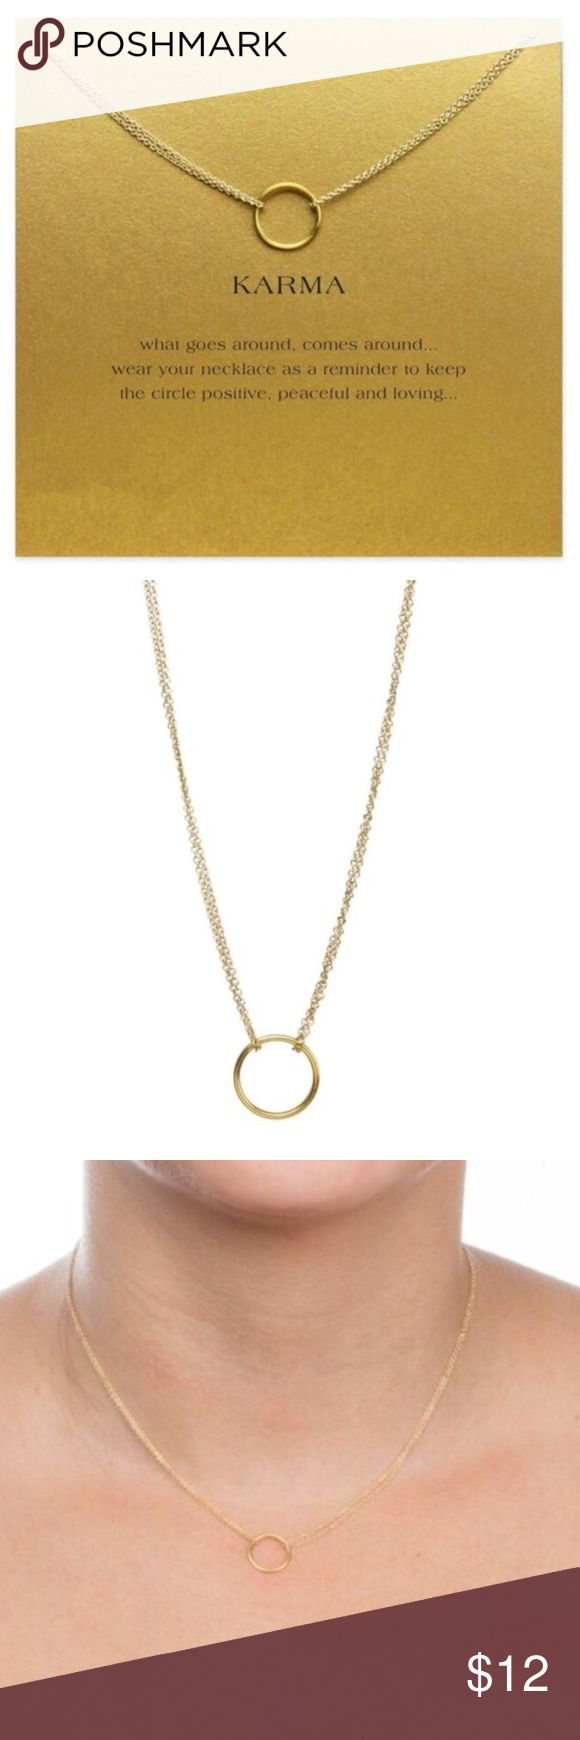 Karma Double Chain Circle Dainty Necklace Gold This Golden Threads Karma gold necklace choker on a delicate chain also includes a lovely gold card for you or your friend with the the printed saying; \What goes around comes around... wear your necklace as a reminder to keep the circle positive peaceful and loving...\.     The necklace has a 10\ with a 2.5\ extender for the perfect fit. golden threads Jewelry Necklaces